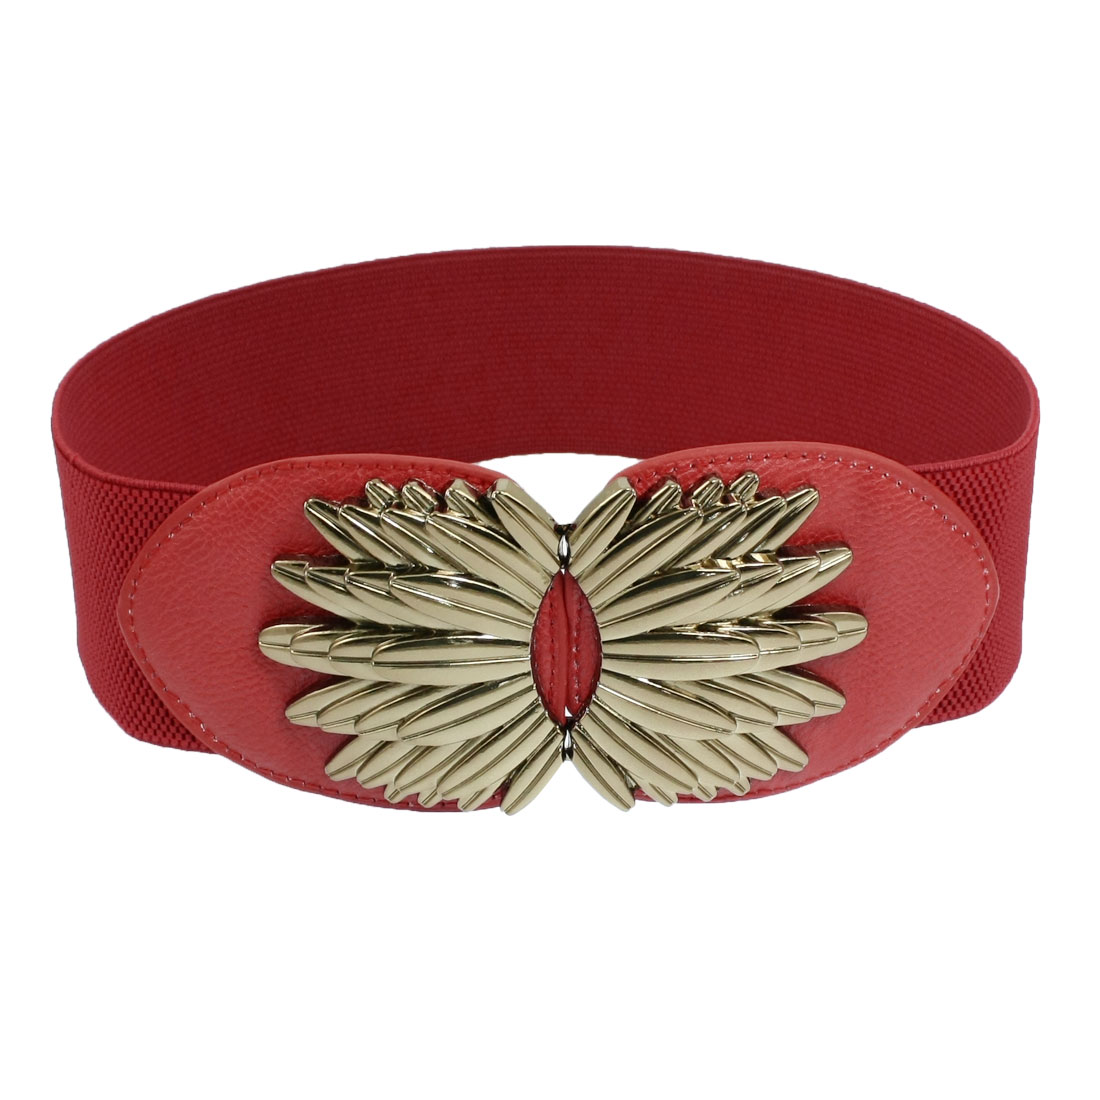 Metal Interlocking Buckle Red Elastic Waistband Belt for Women